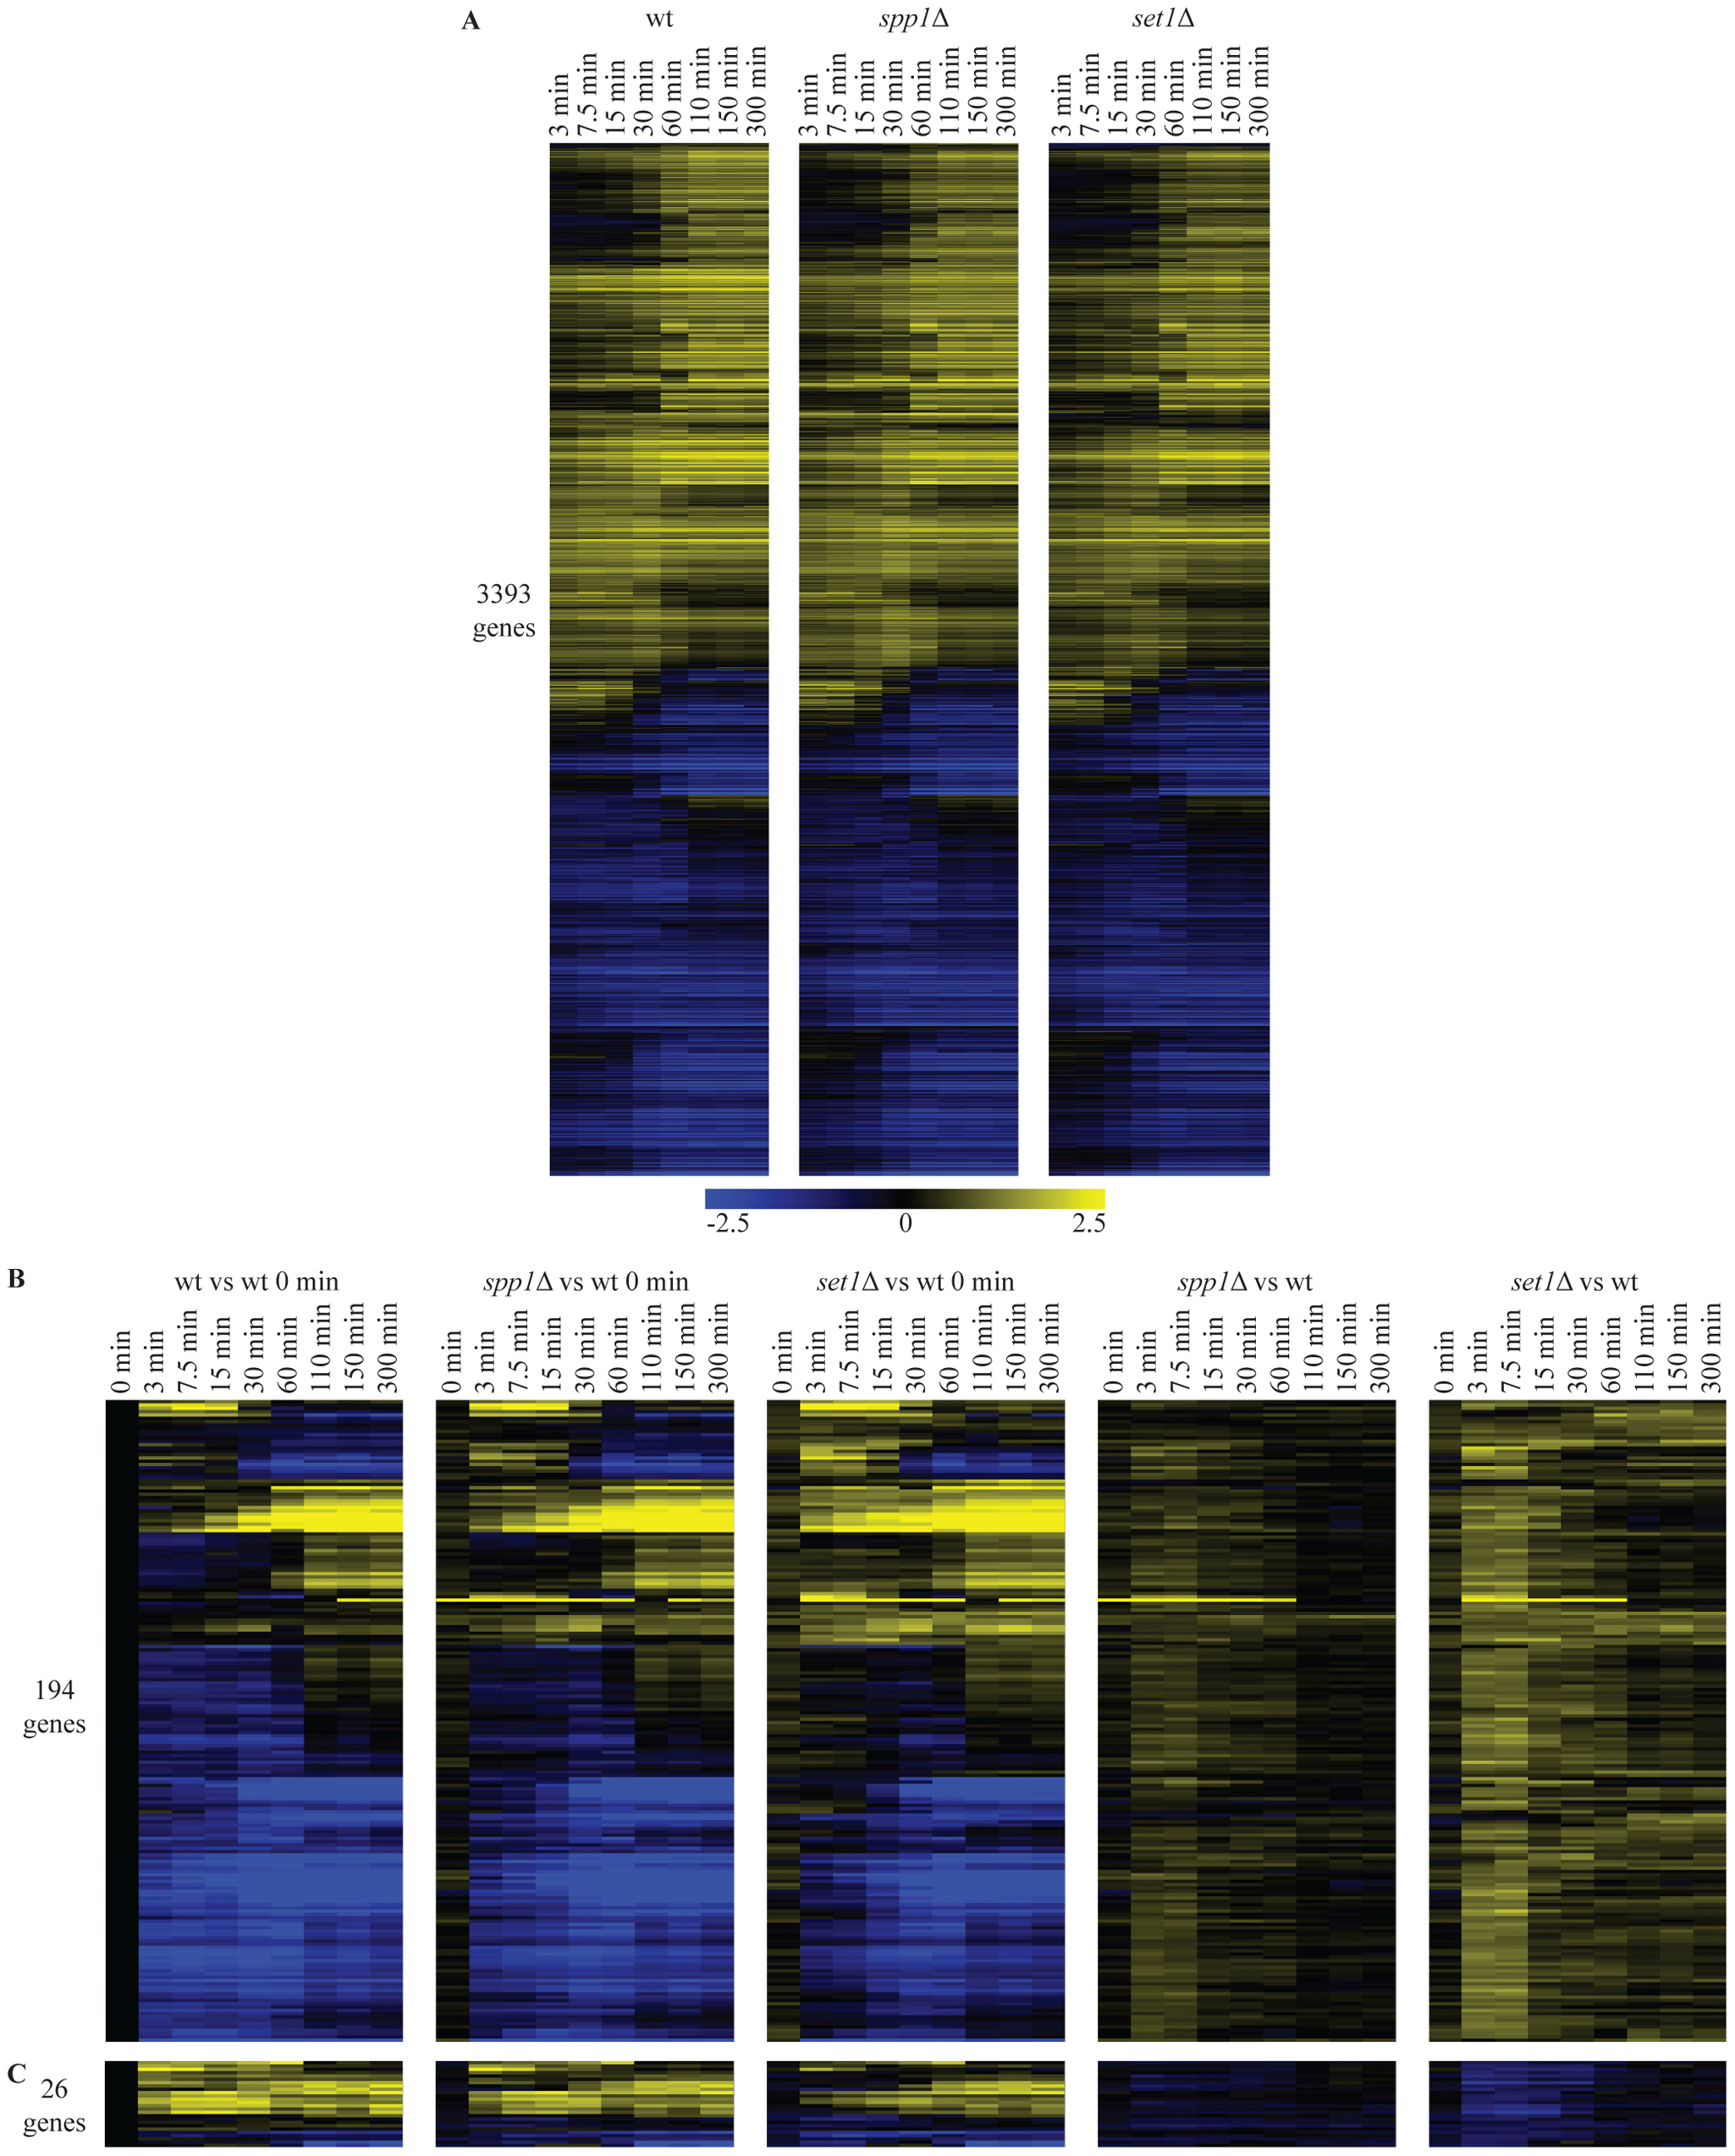 Loss of H3K4 di- and trimethylation leads to a delay in repression kinetics for a subset of genes.